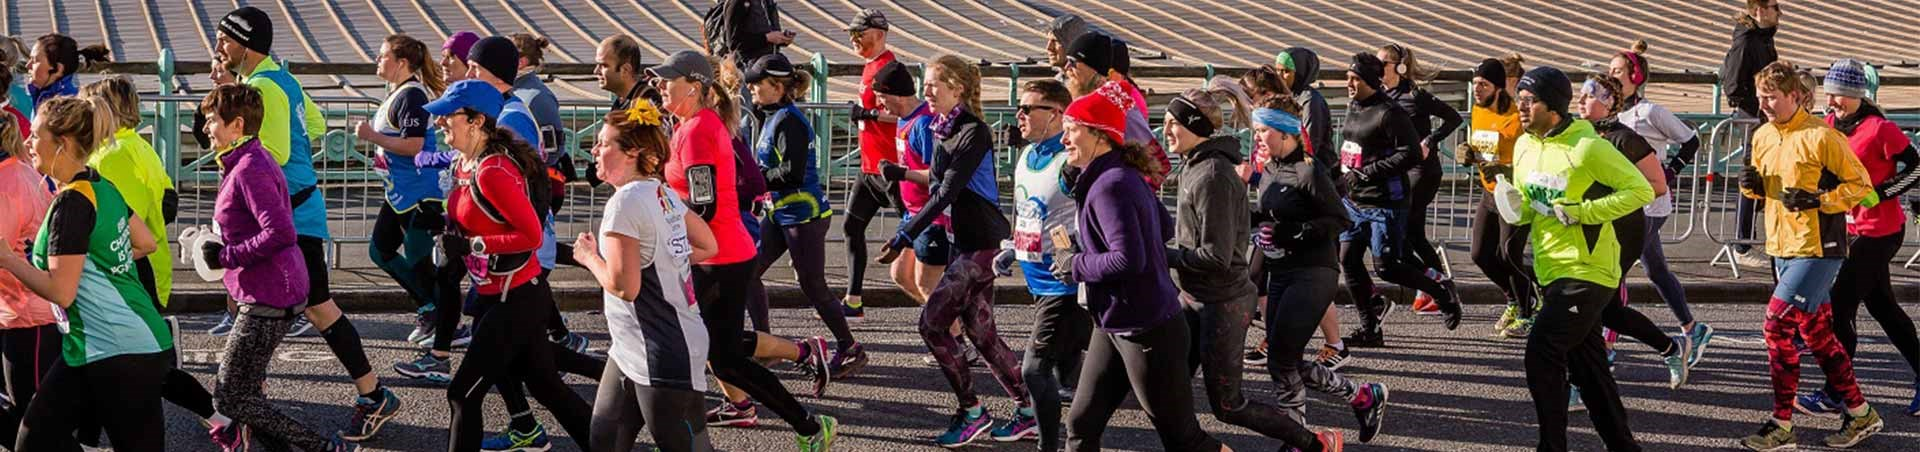 Get involved with the Grand Brighton Half Marathon with National Express